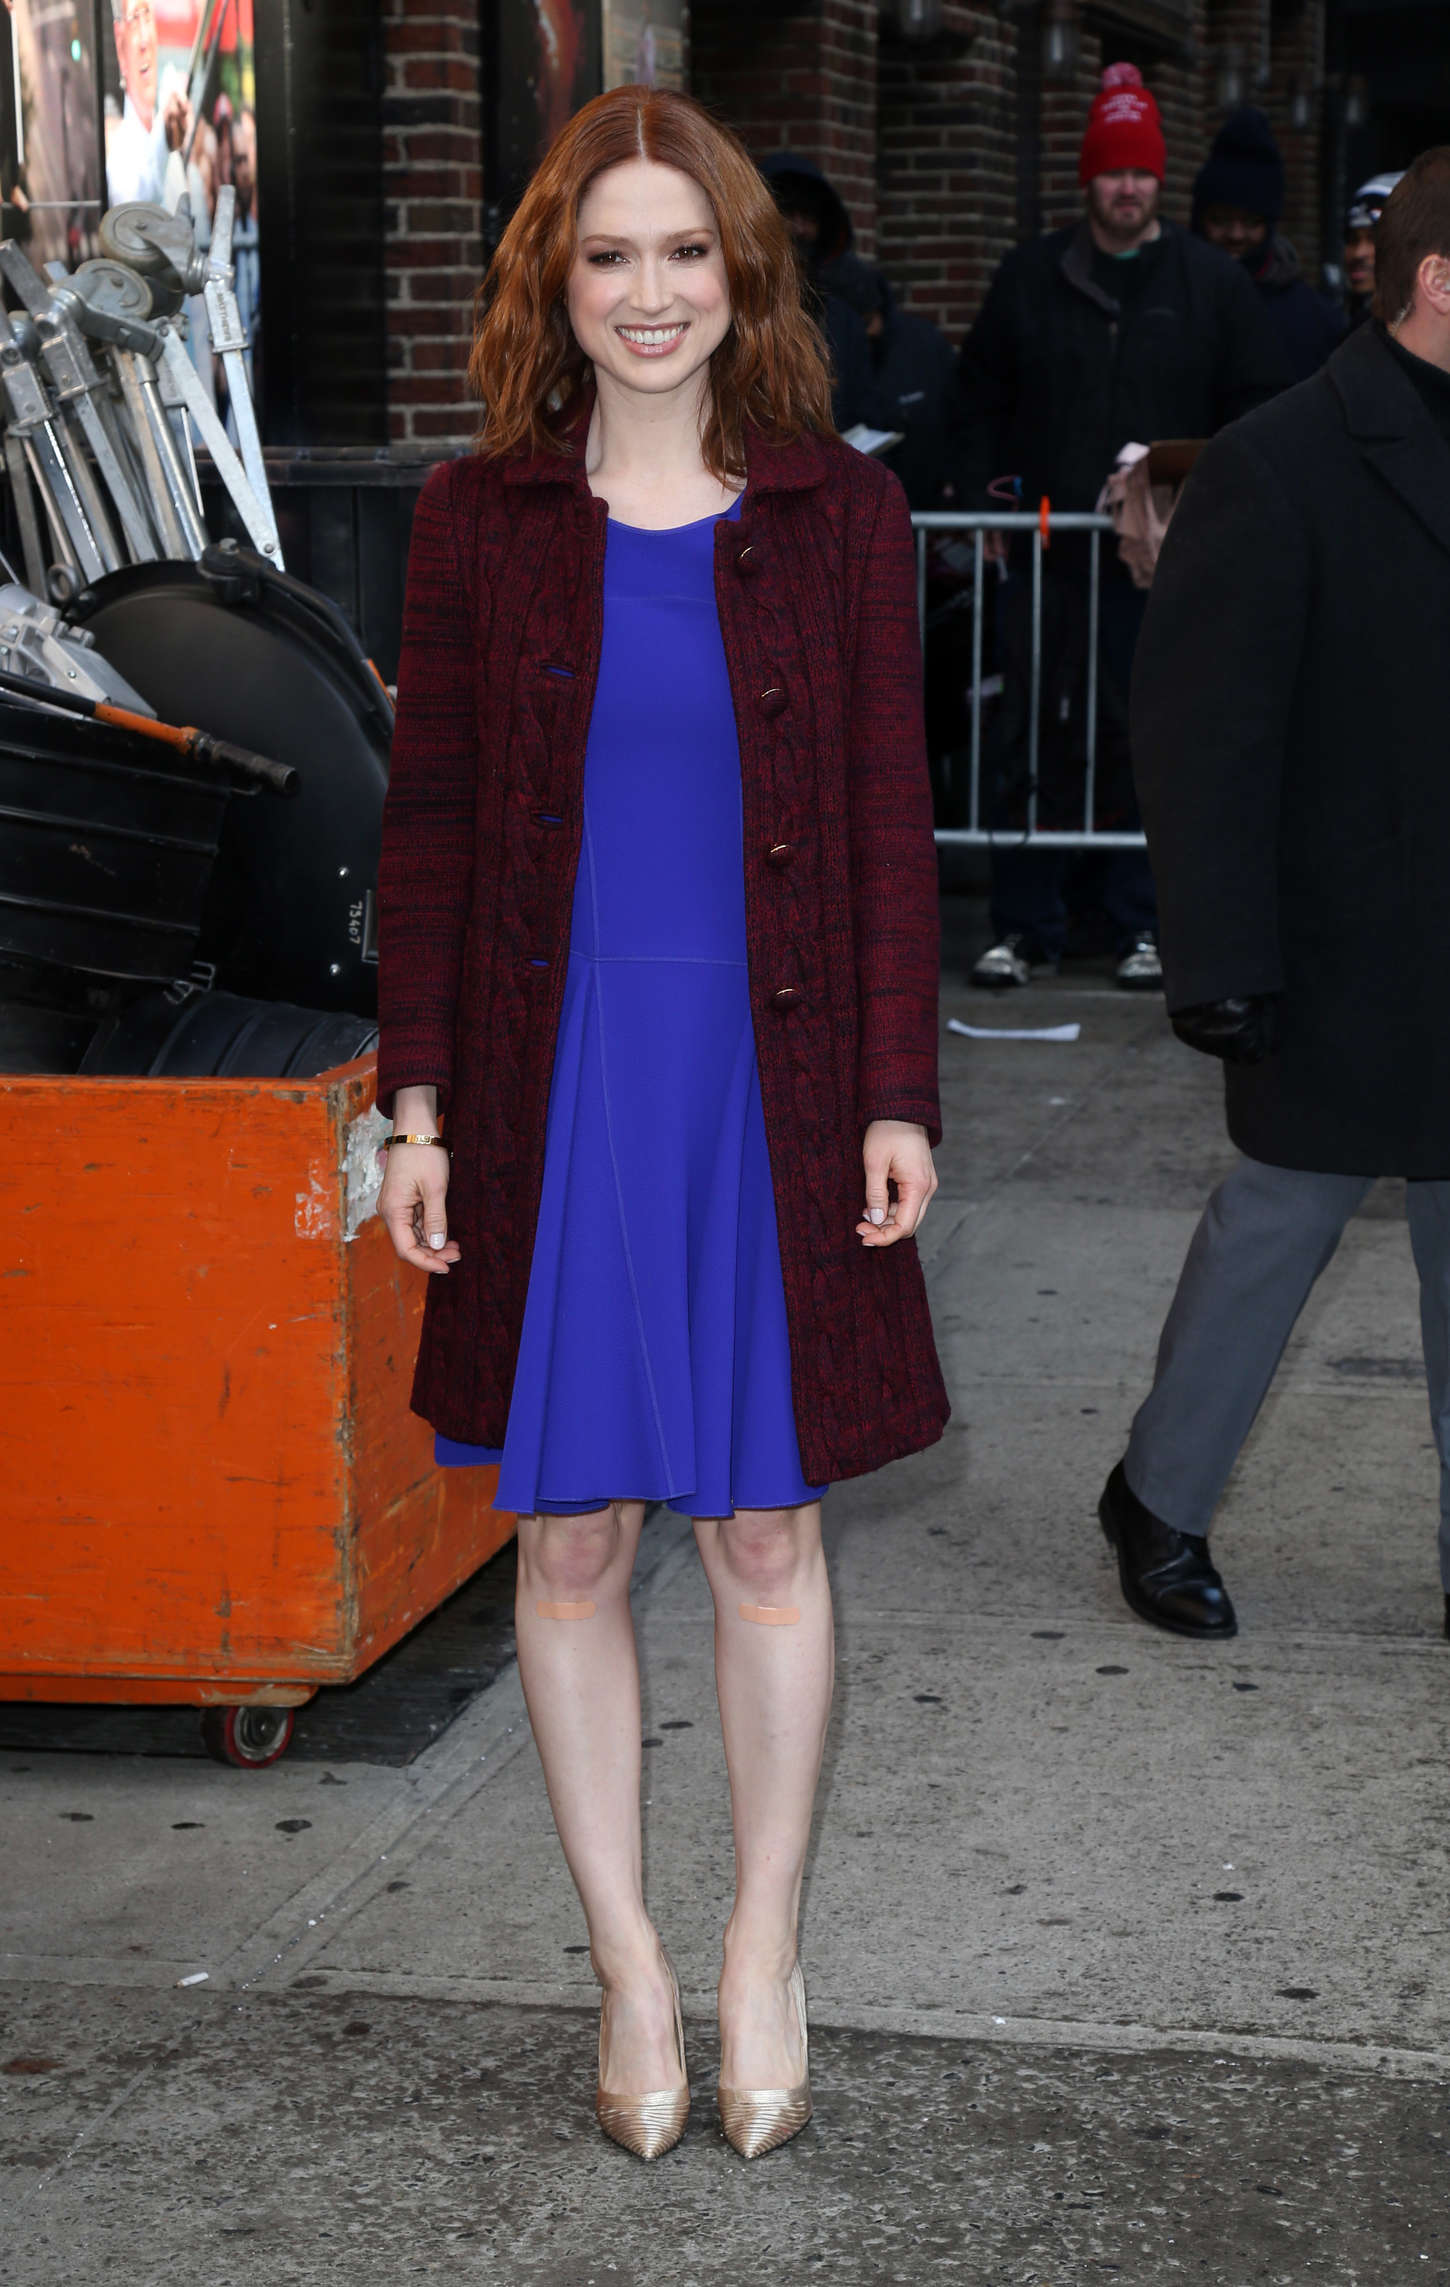 Ellie Kemper Arriving at the Late Show with David Letterman in New York City